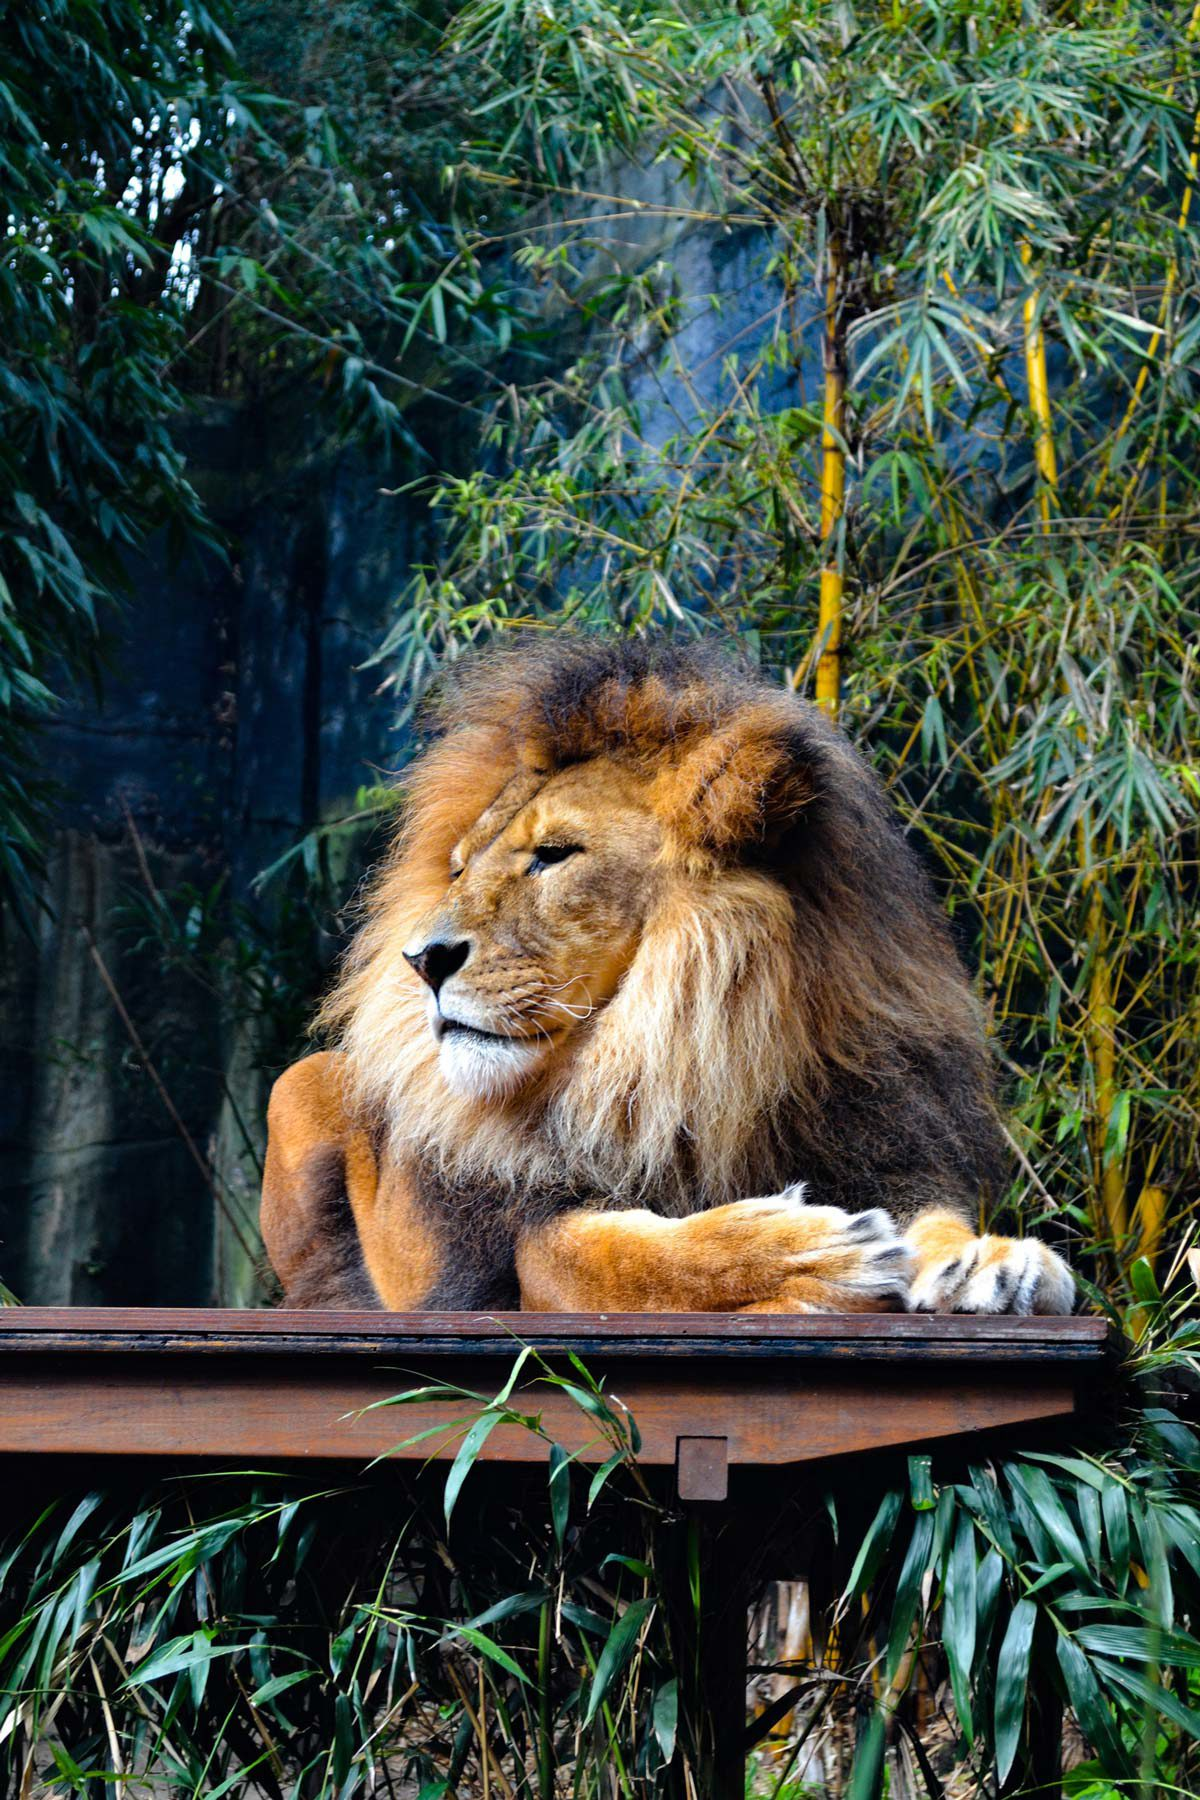 Lion sitting on bench surrounded by tropical trees.